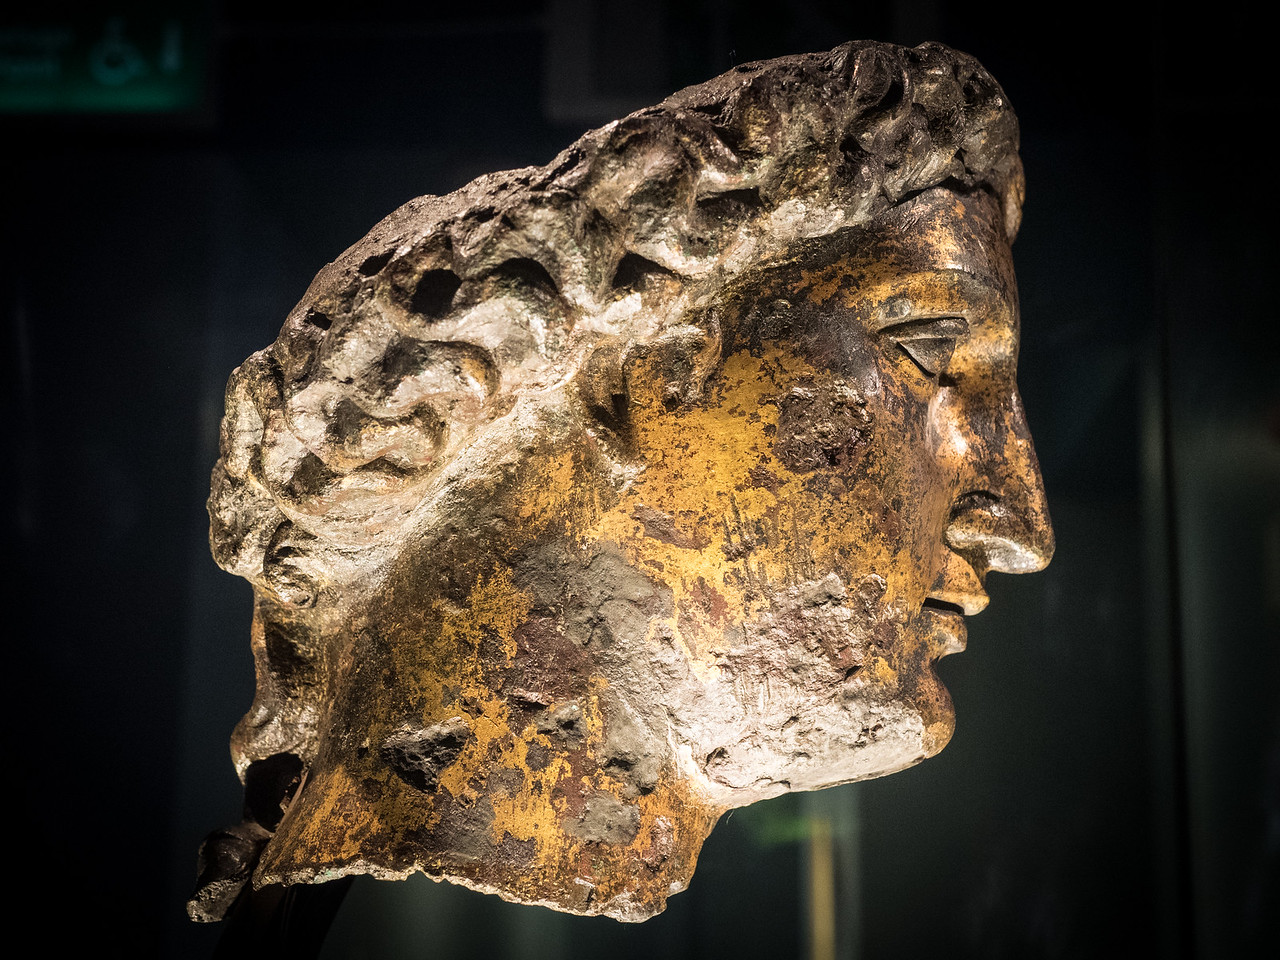 A fantastic gilt bronze head of the goddess Sulis Minerva found in the 18th century by sewer workers,  near the baths. Originally it would have been part of a statue in the temple at the baths.